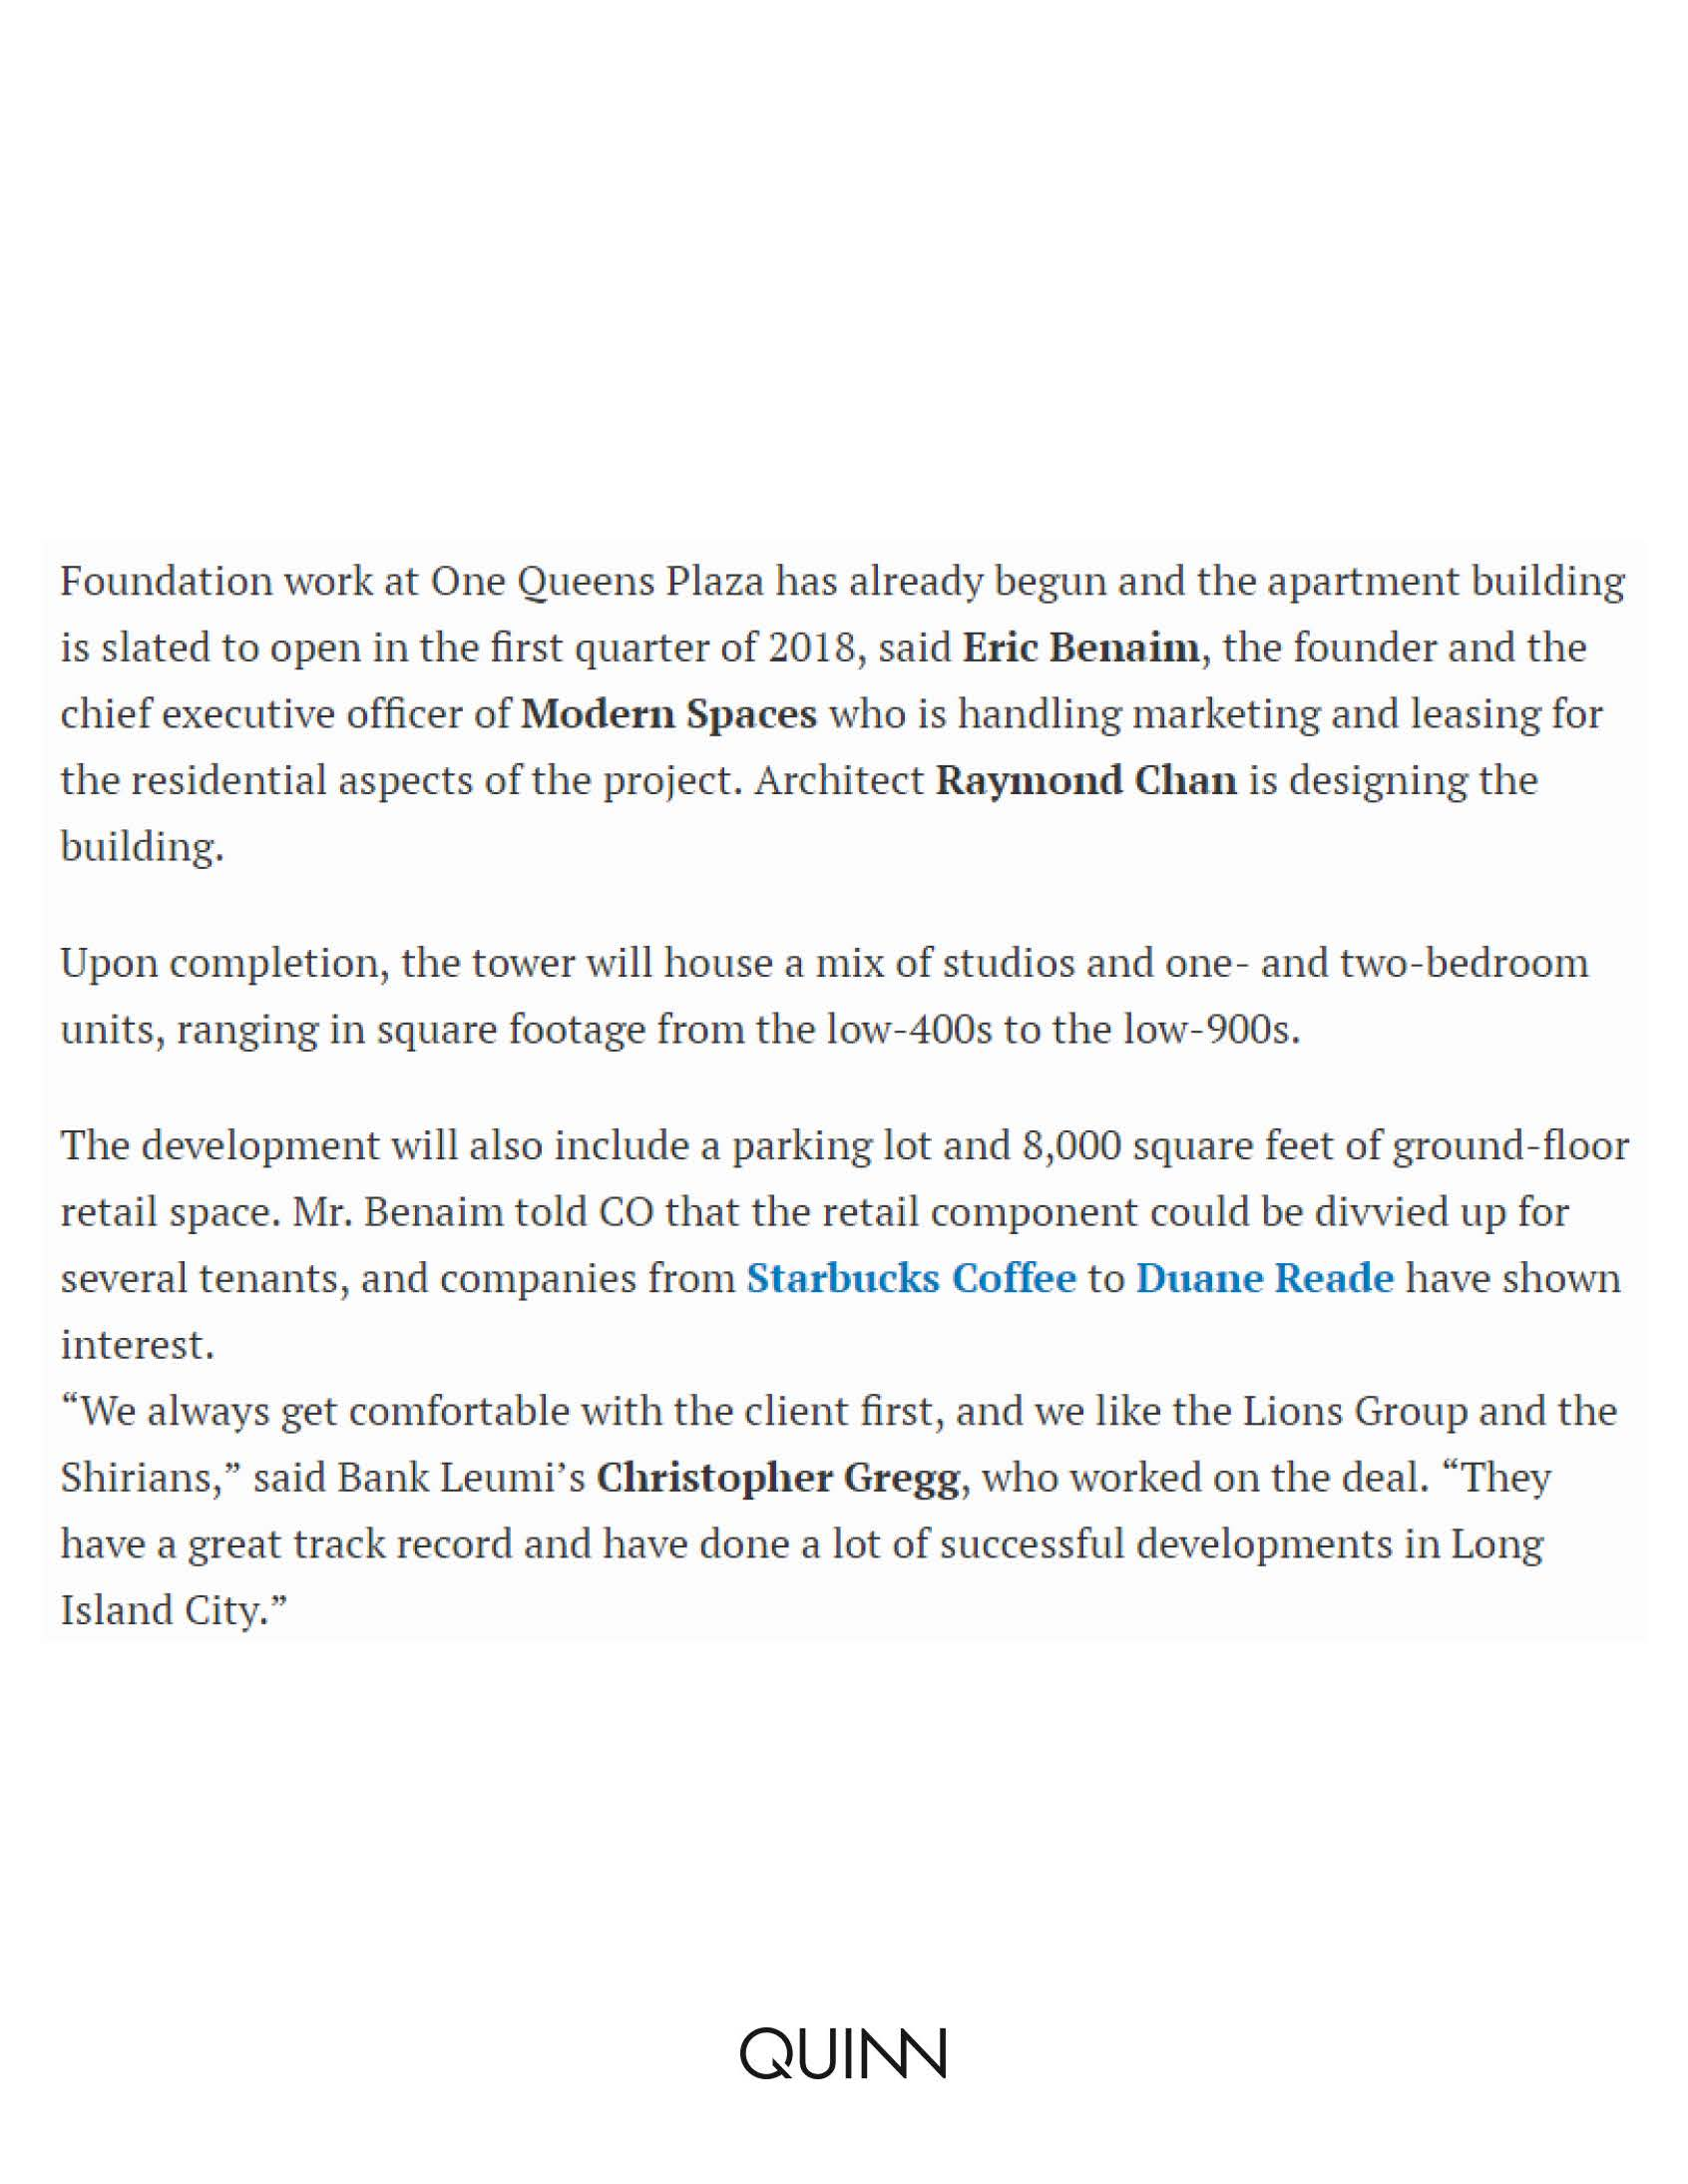 Commercial Observer Online - Bank Leumi Provides $36M for 18-Story LIC Resi Tower - 03.16.16 (1)_Page_3